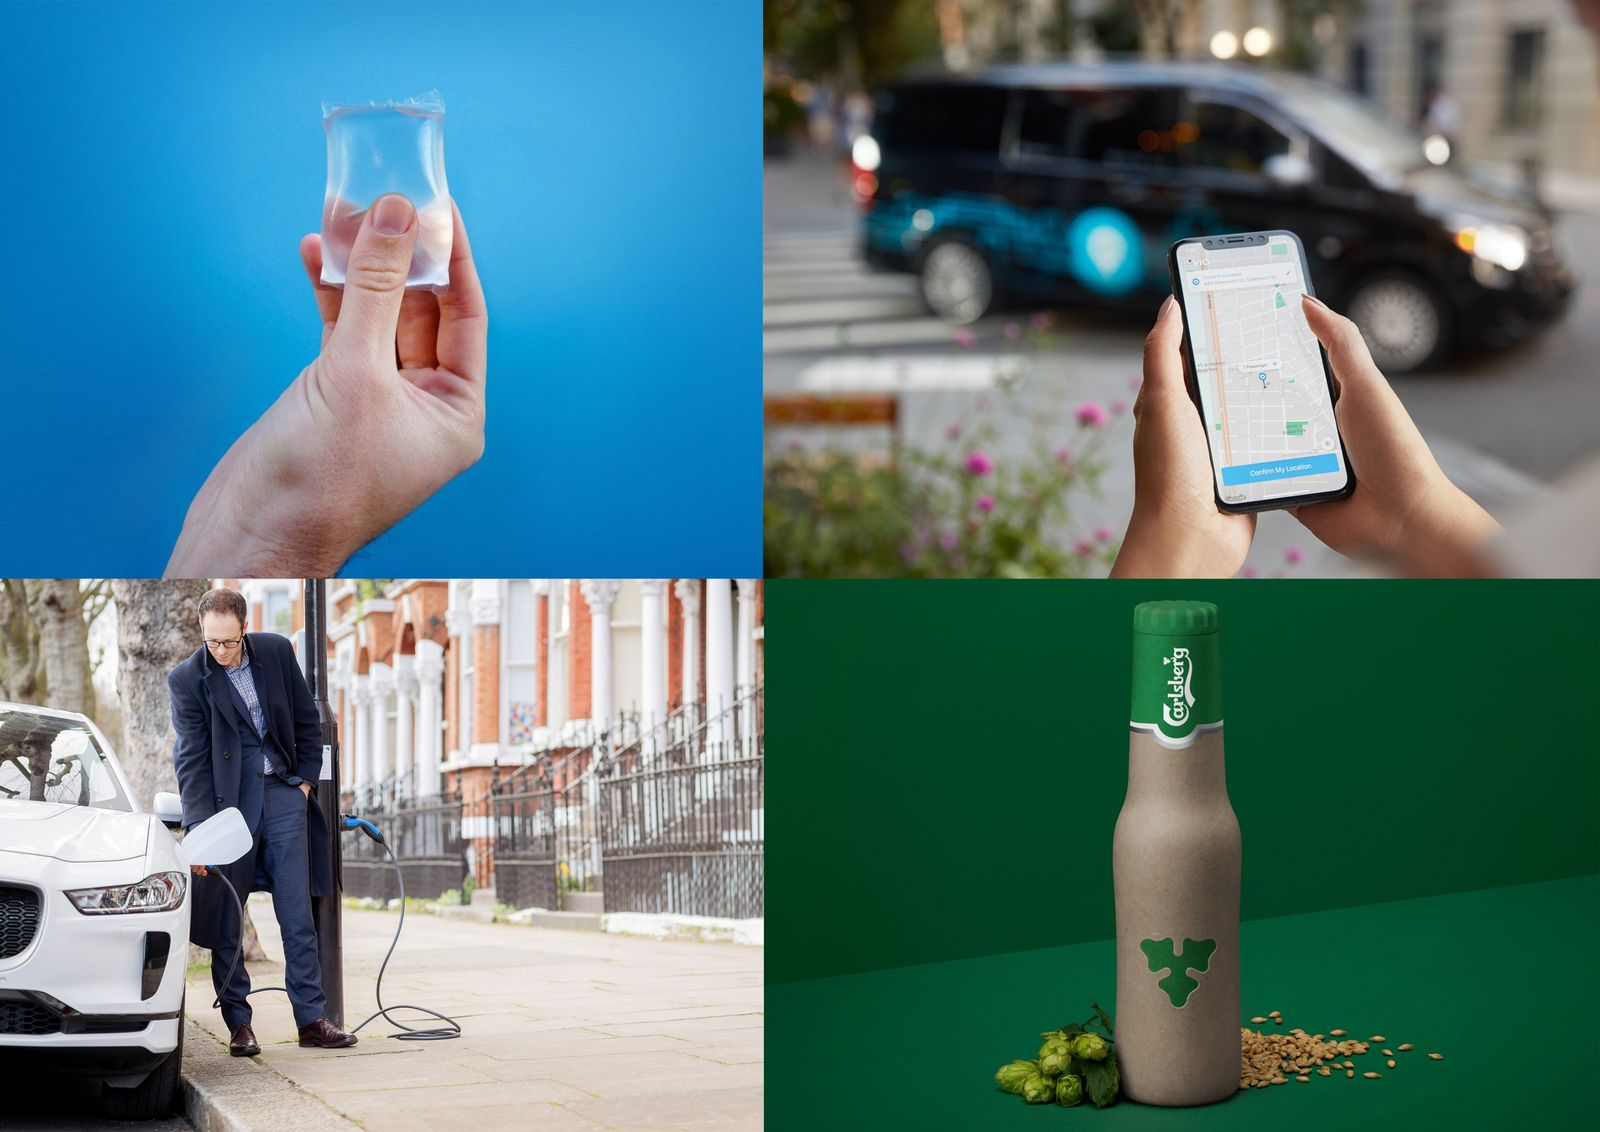 Where sustainability meets convenience: edible 'Ooho' sachets from Notpla, minibus hailing, Carlsberg's plant n' paper fiber beer ...